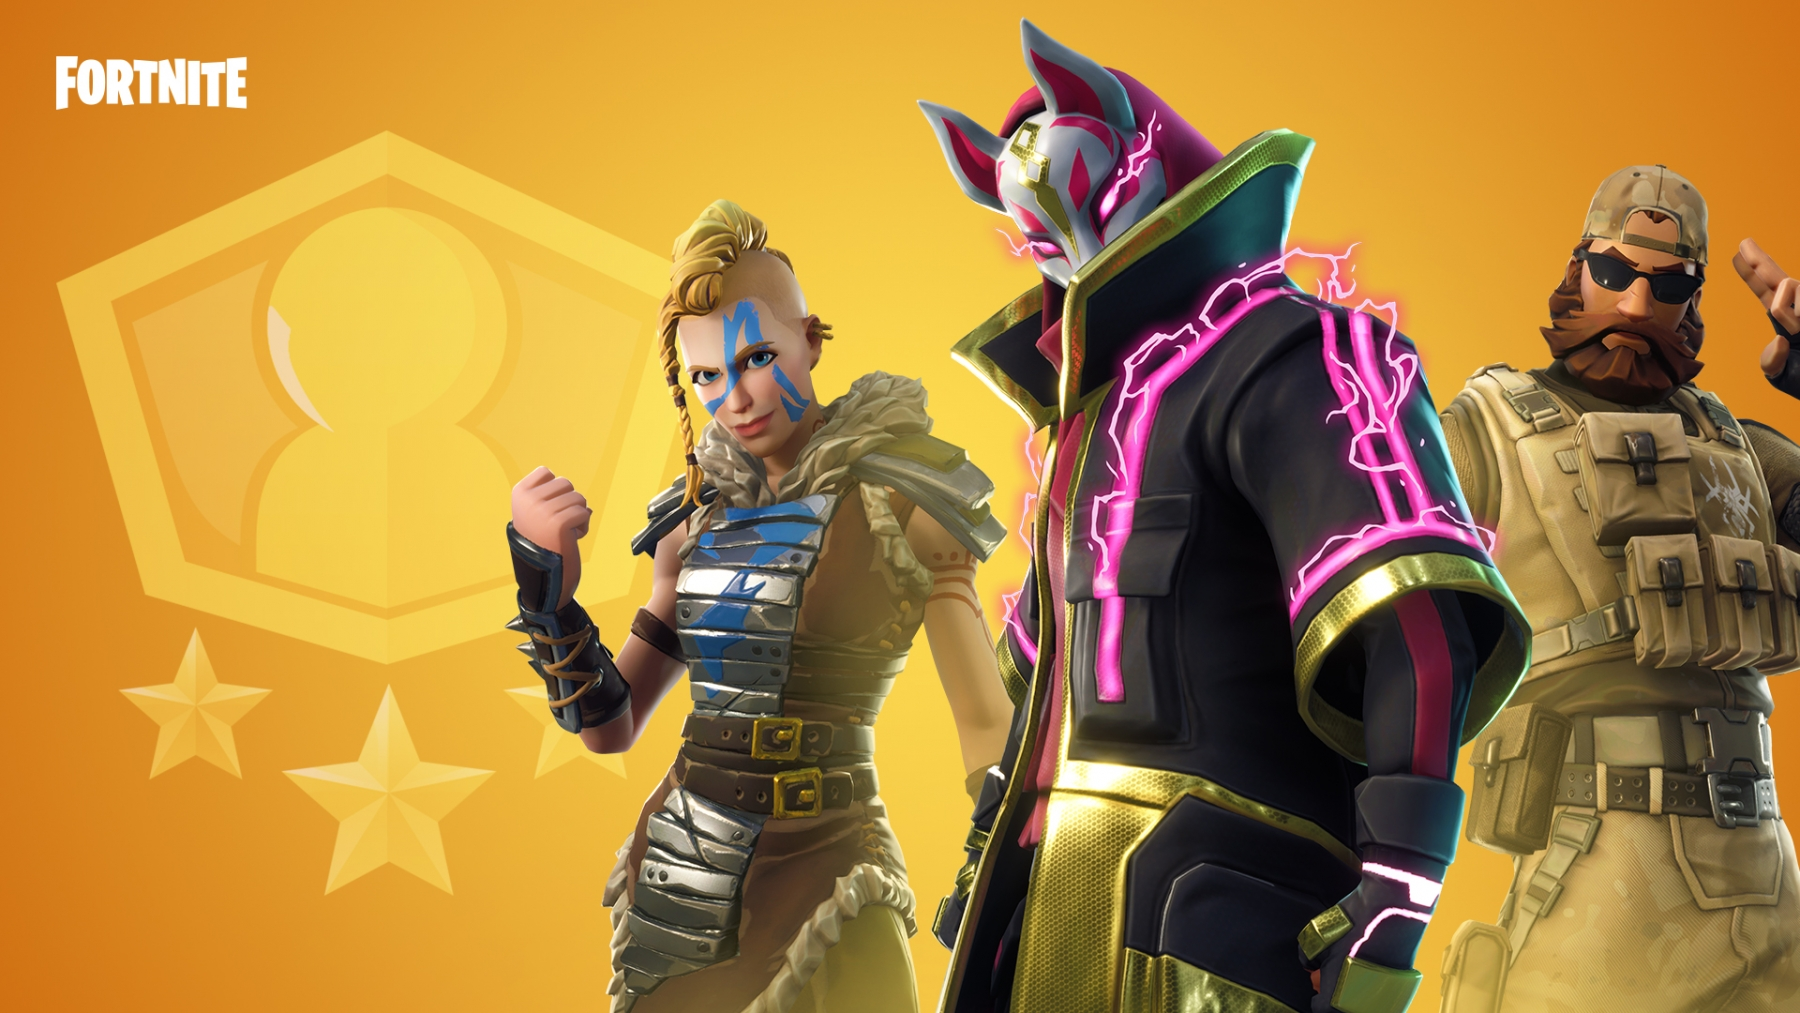 Video Game Fortnite Hd Static Wallpaper Collection Yl Computing